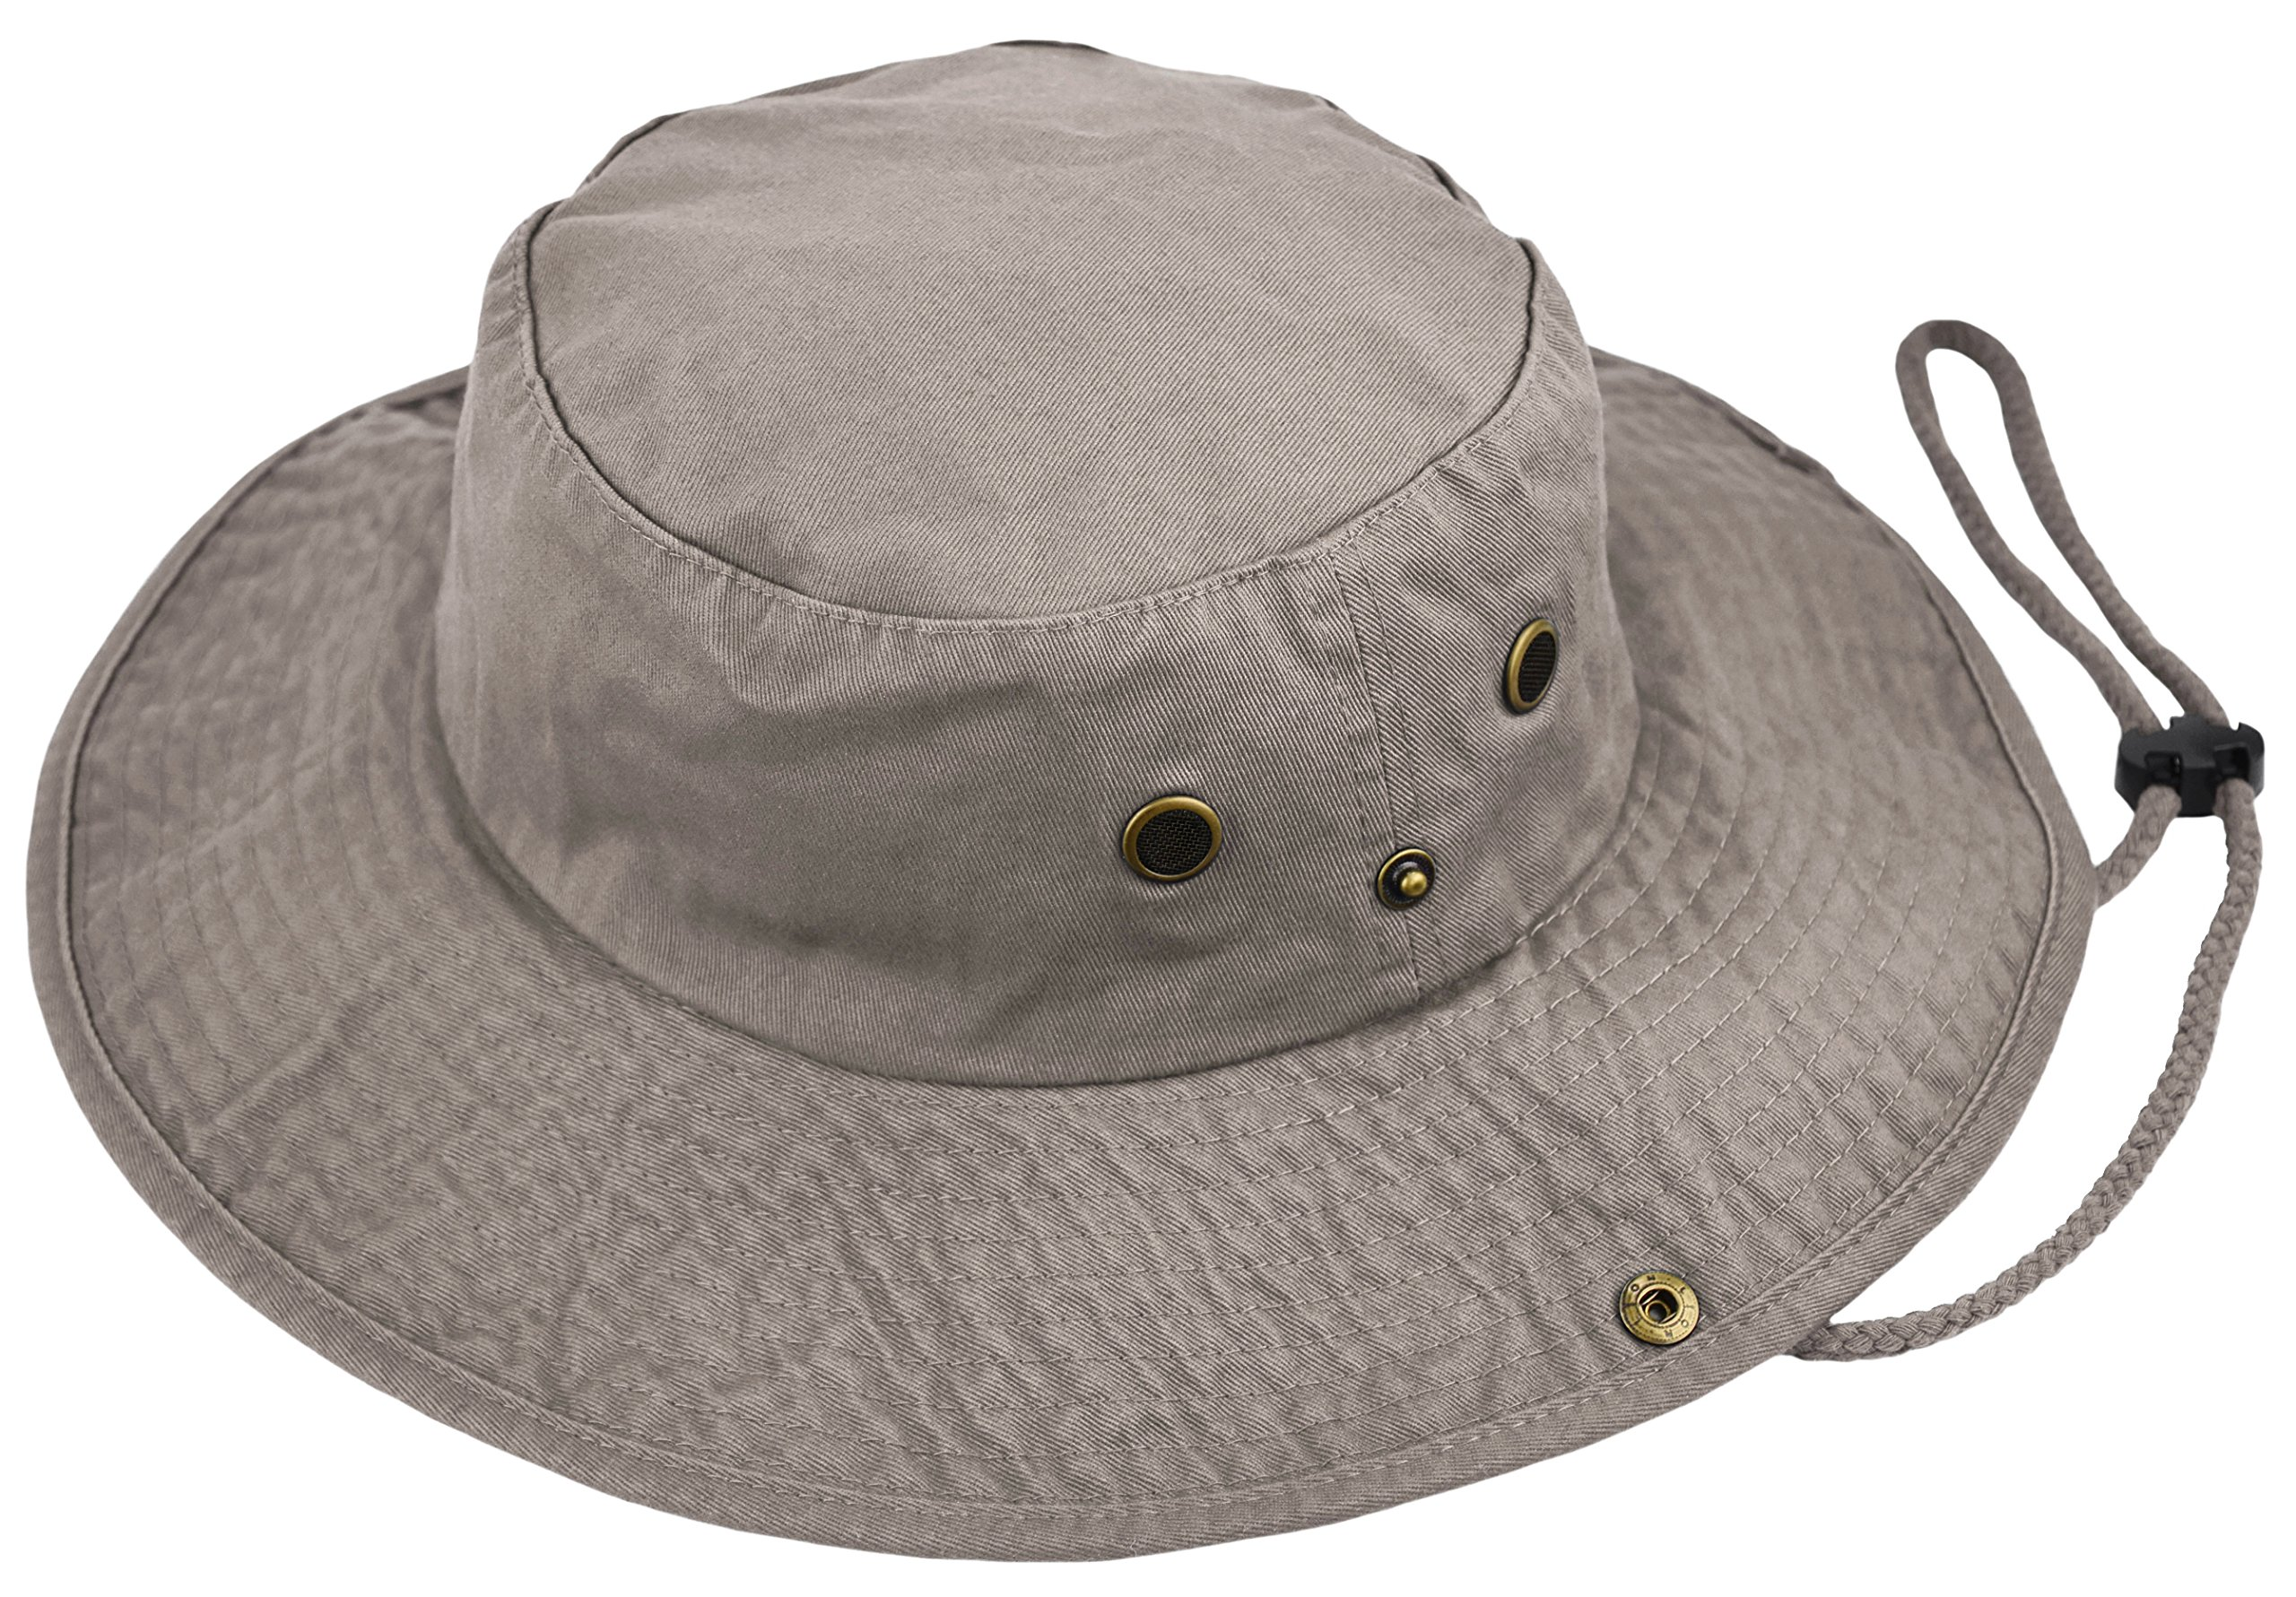 Deewang Summer Bucket Cap, Sun Hat With Adjustable CHINSTRAP, Outdoor Hunting Fishing Safari boonie Hat (Khaki, Large/X-Large)